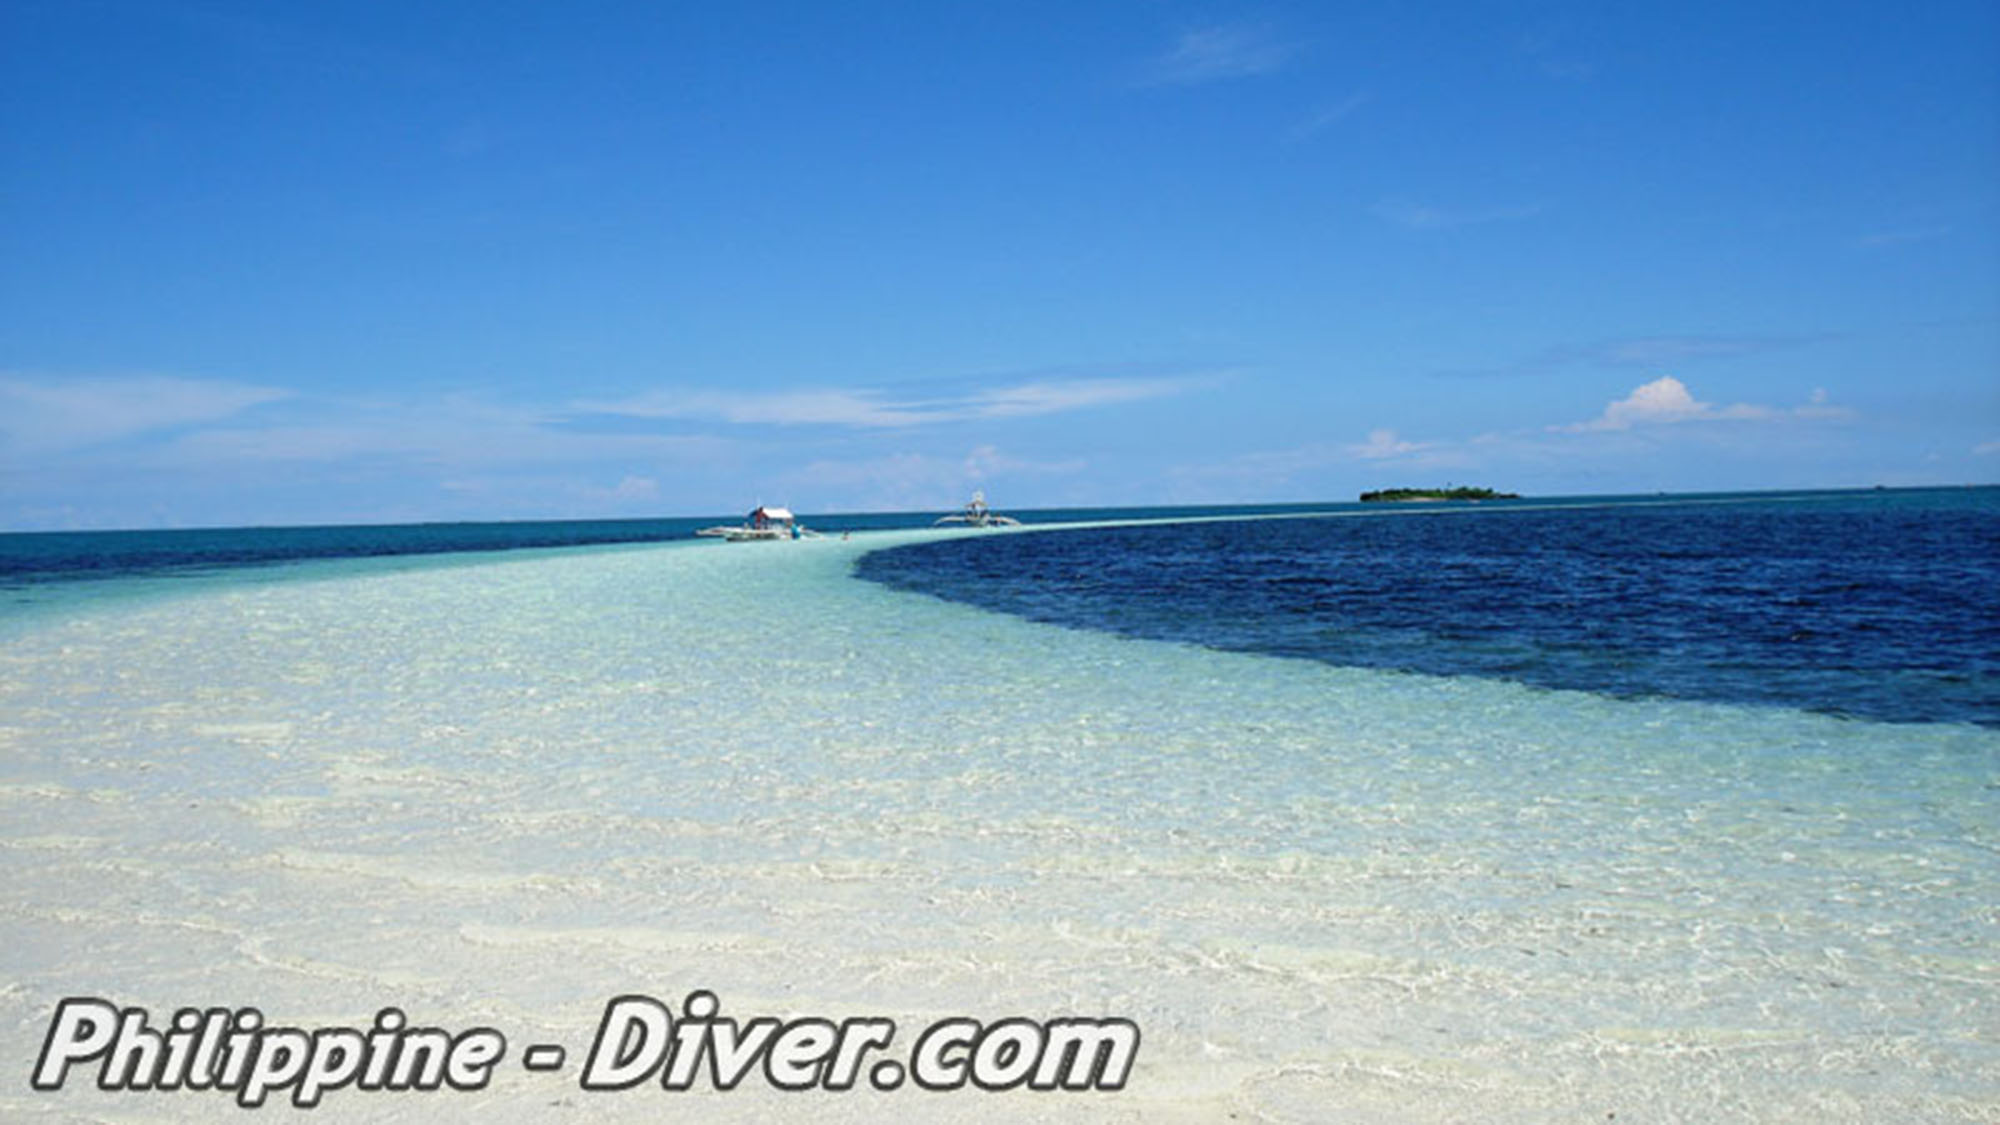 virgin-island-philippines near bohol